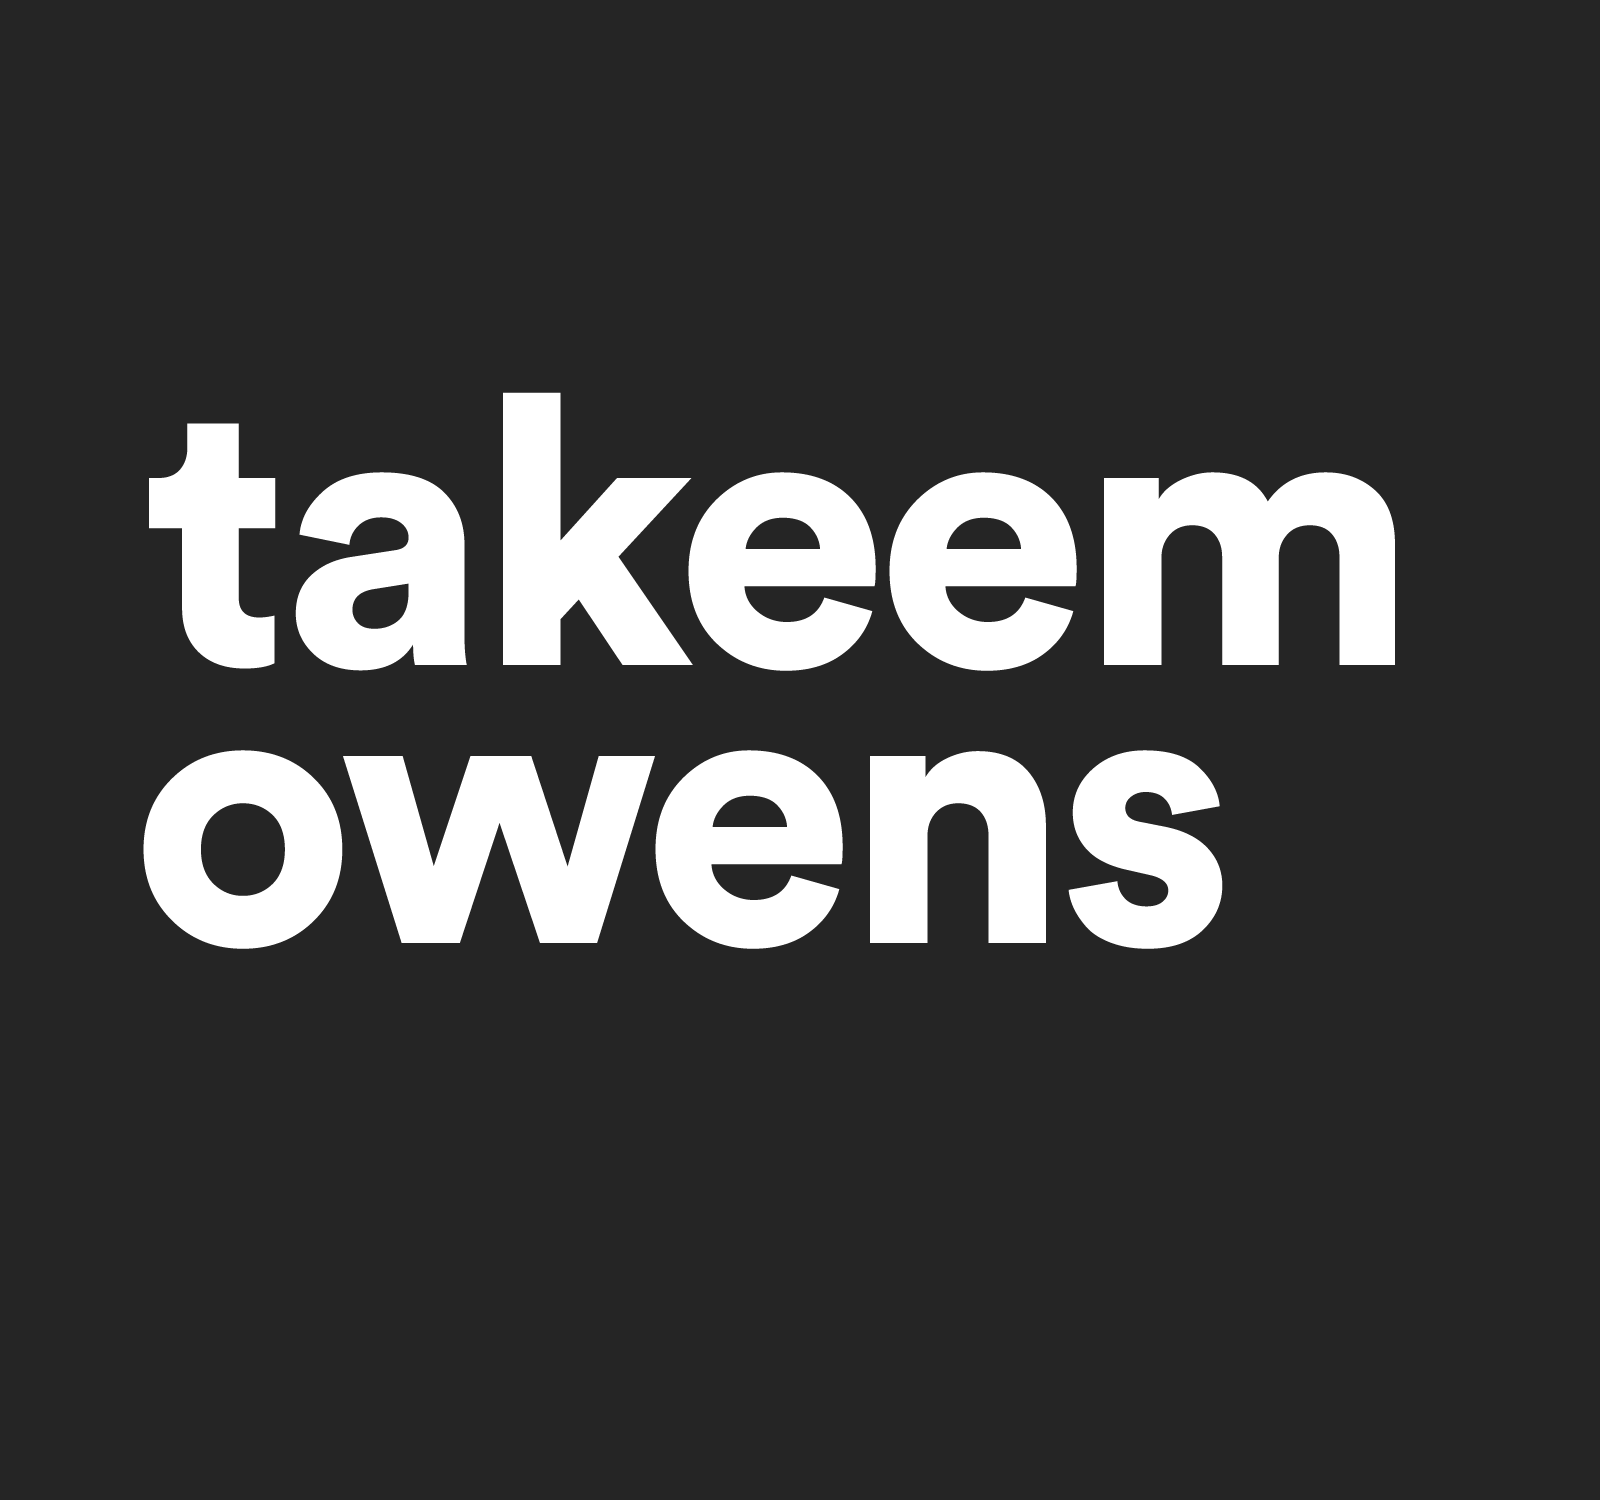 Takeem Owens | Product / UX Design Strategist